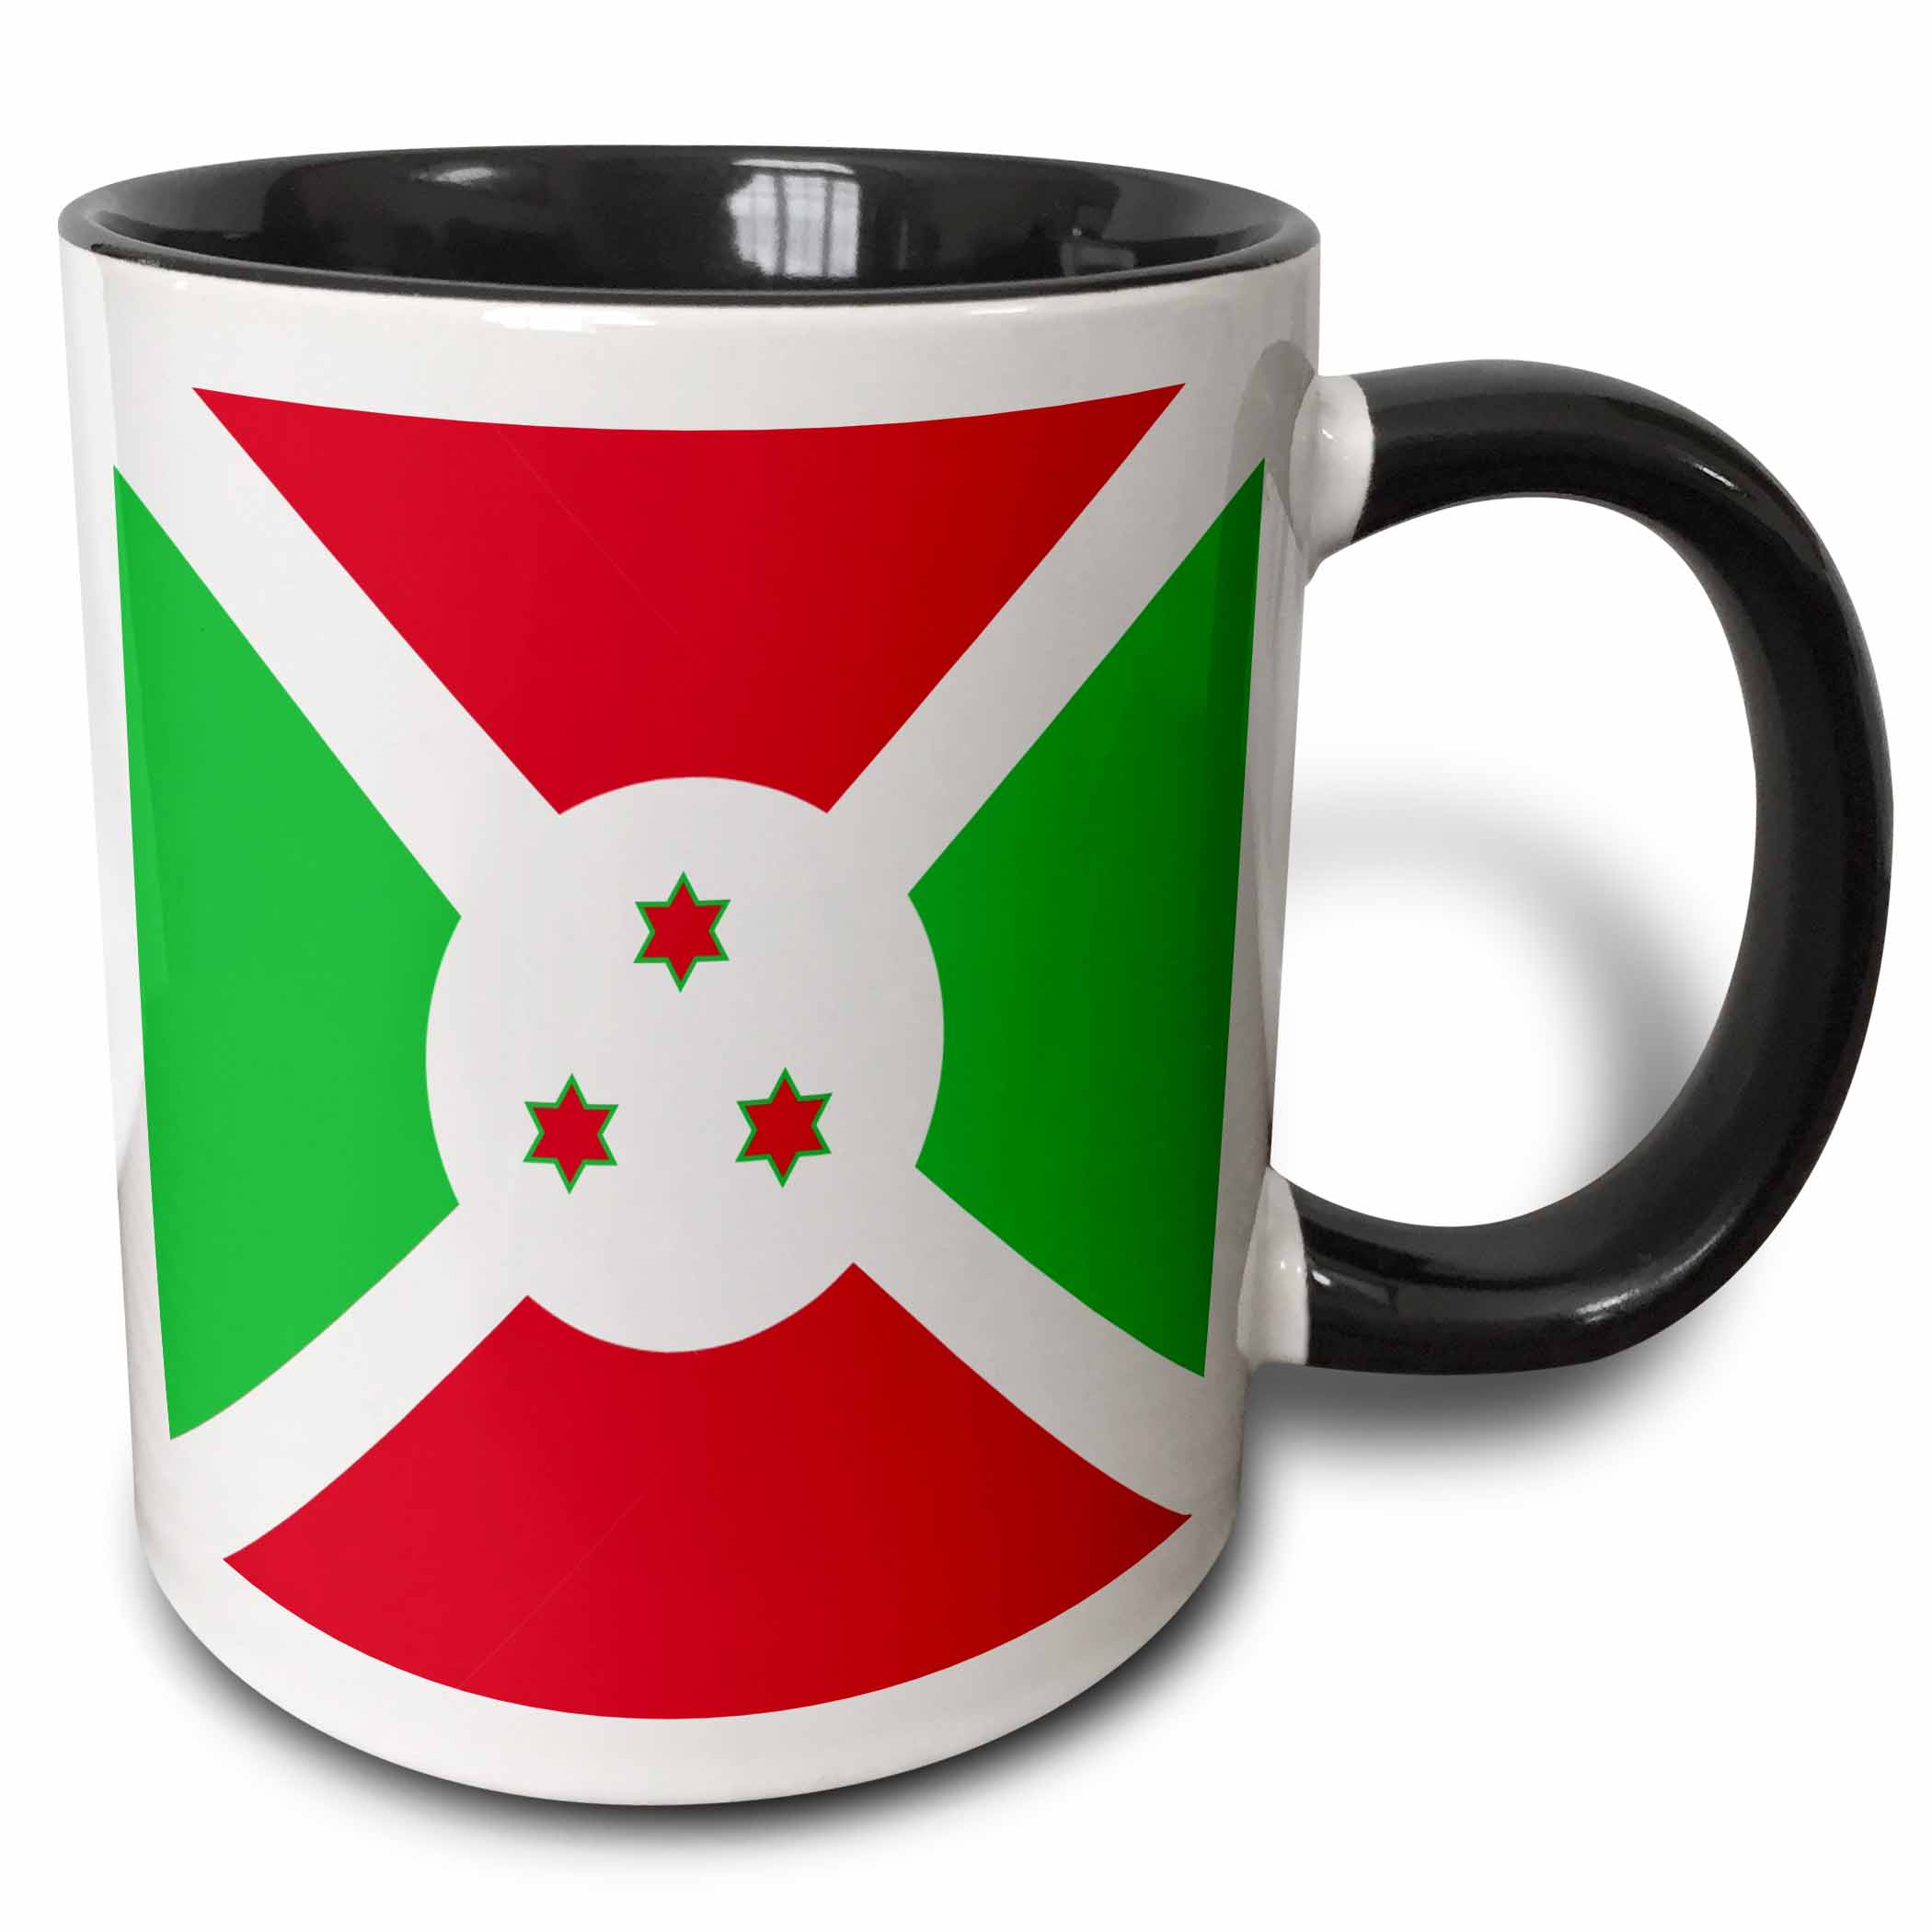 3drose Flag Of Burundi East Africa African Country World Flags